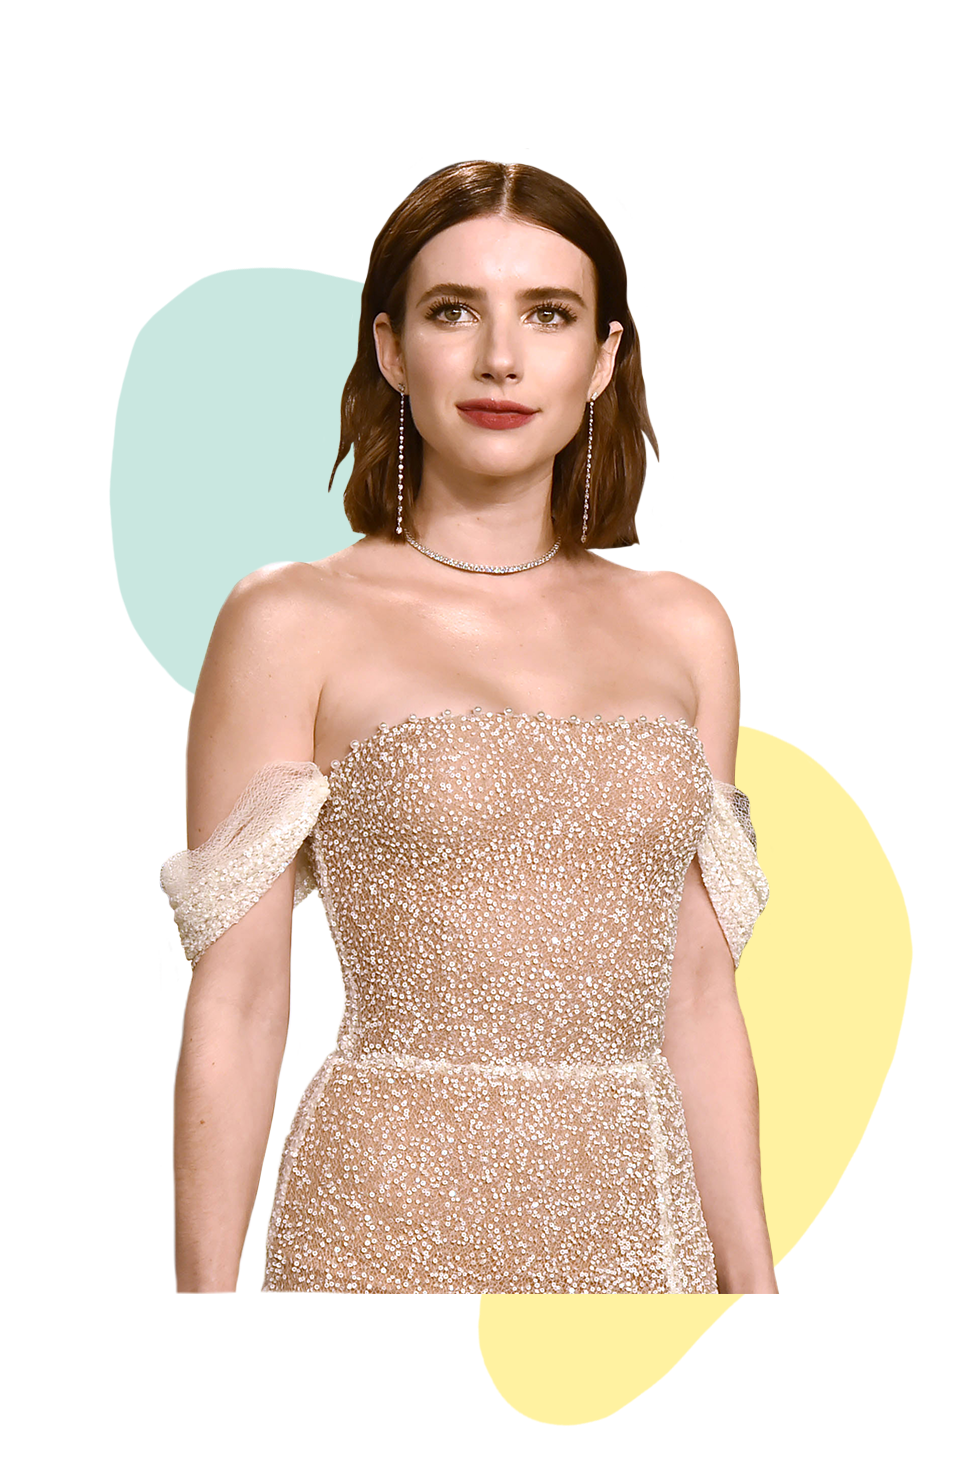 Emma Roberts Earlier this year, Us Weekly reported that Roberts extolled the virtues of her favorite Mazz Hanna CBD bath tonic on her Instagram stories, explaining it helps to soothe her entire body. Hanna, the celeb manicurist behind the new-age beauty brand, started incorporating CBD into products after finding relief when using it to combat long-term pain from a car accident.